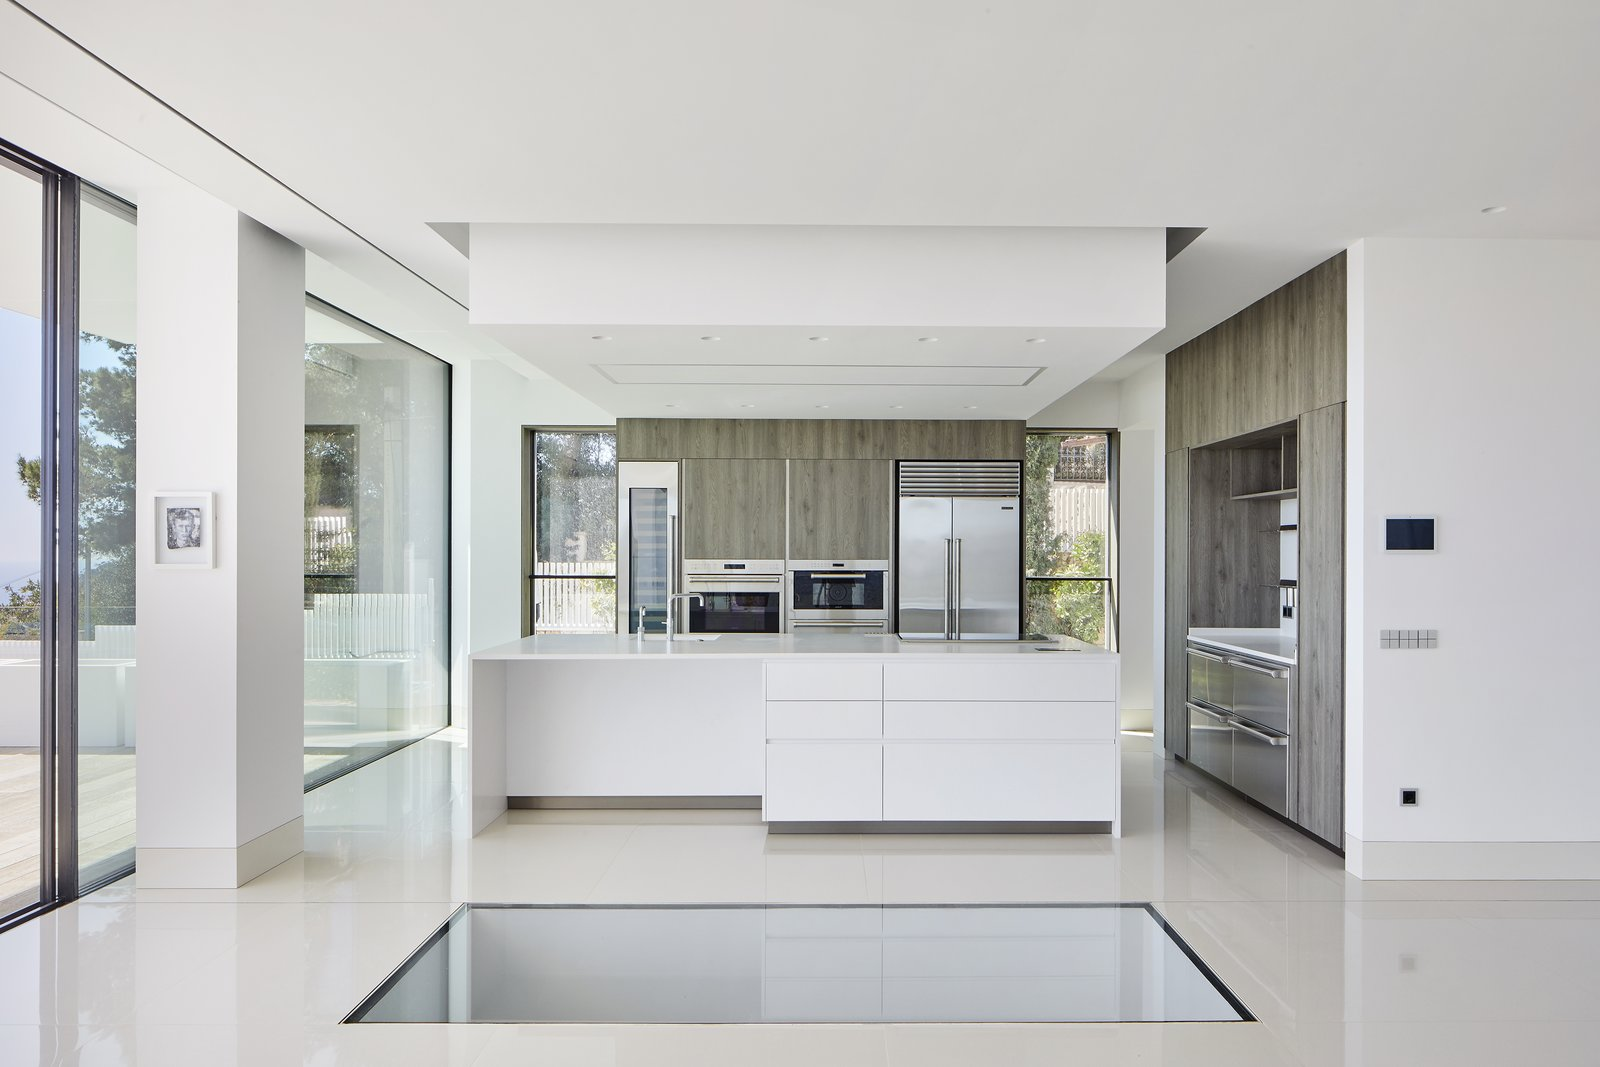 Kitchen, Wall Oven, White, Metal, Microwave, Wine Cooler, Drop In, Laminate, Ceiling, Granite, Range, Range Hood, Dishwasher, Ice Maker, Table, Beverage Center, Cooktops, Wood, Refrigerator, and Porcelain Tile Kitchen.  Best Kitchen Microwave Range Hood Ceiling Drop In White Dishwasher Laminate Metal Photos from 廚房